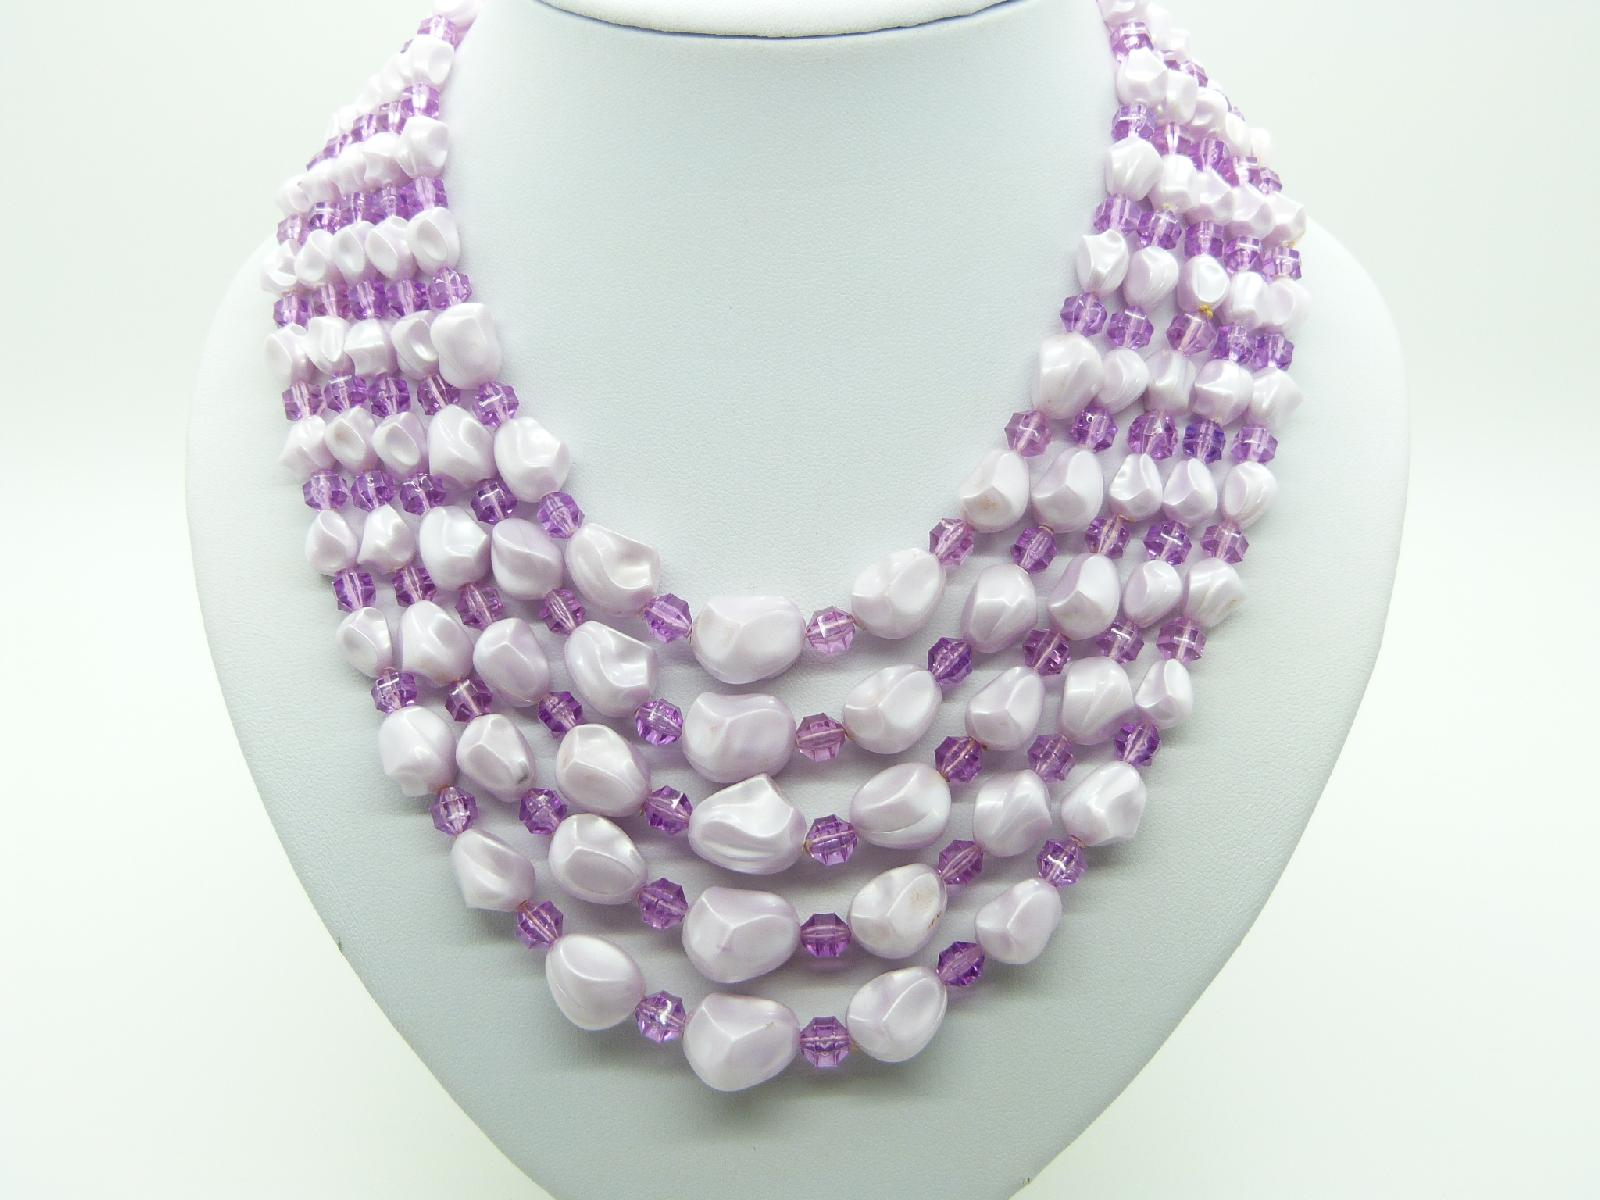 Vintage 50s Amazing Five Row Lilac Pink Textured Lucite Bead Necklace Mint!